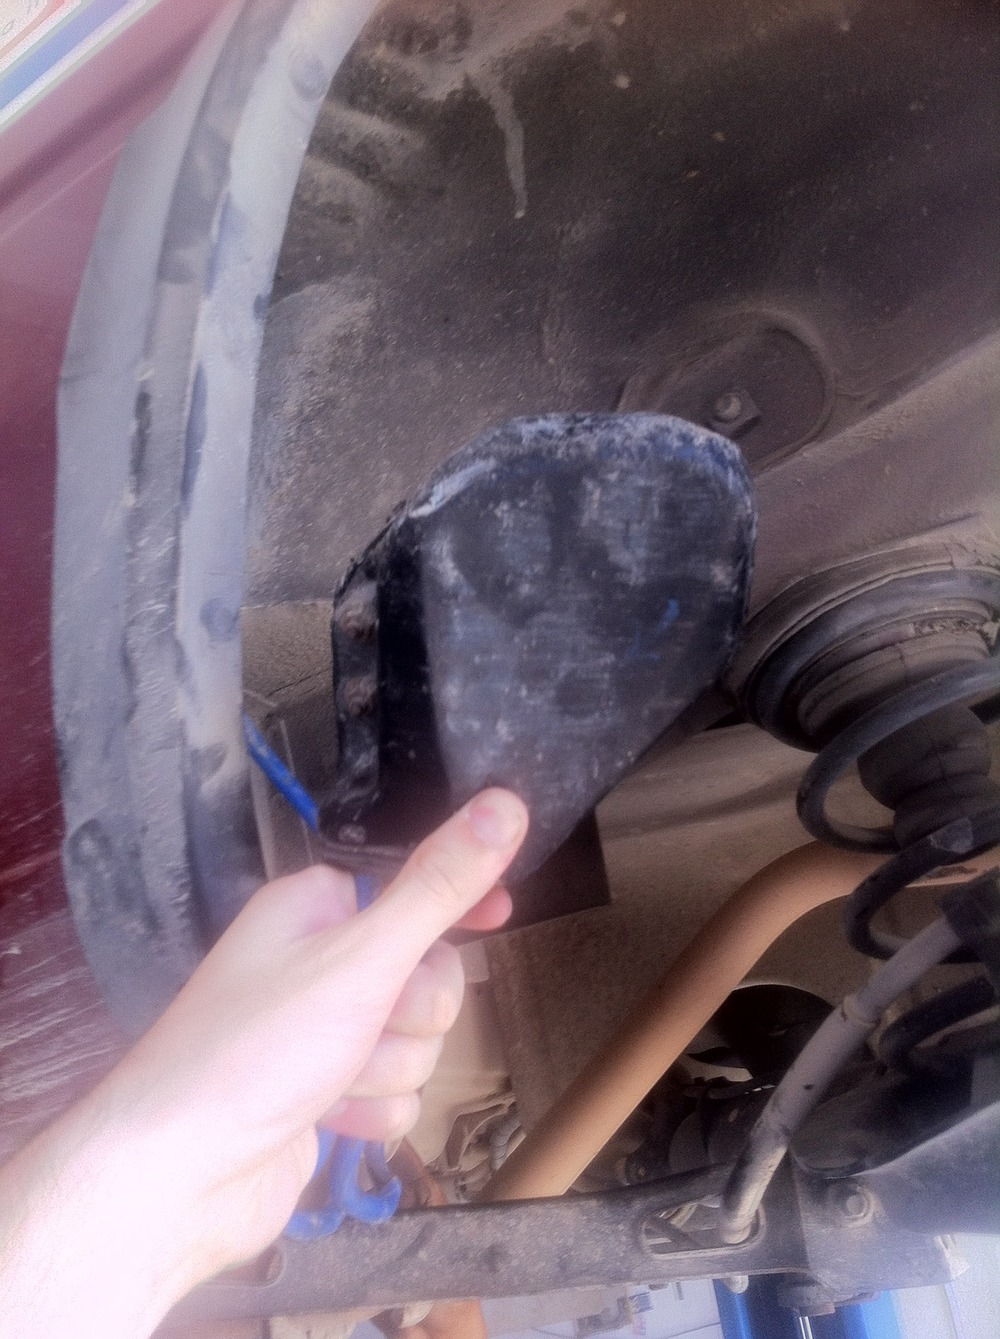 The mechanic doesn't know so wants to remove it